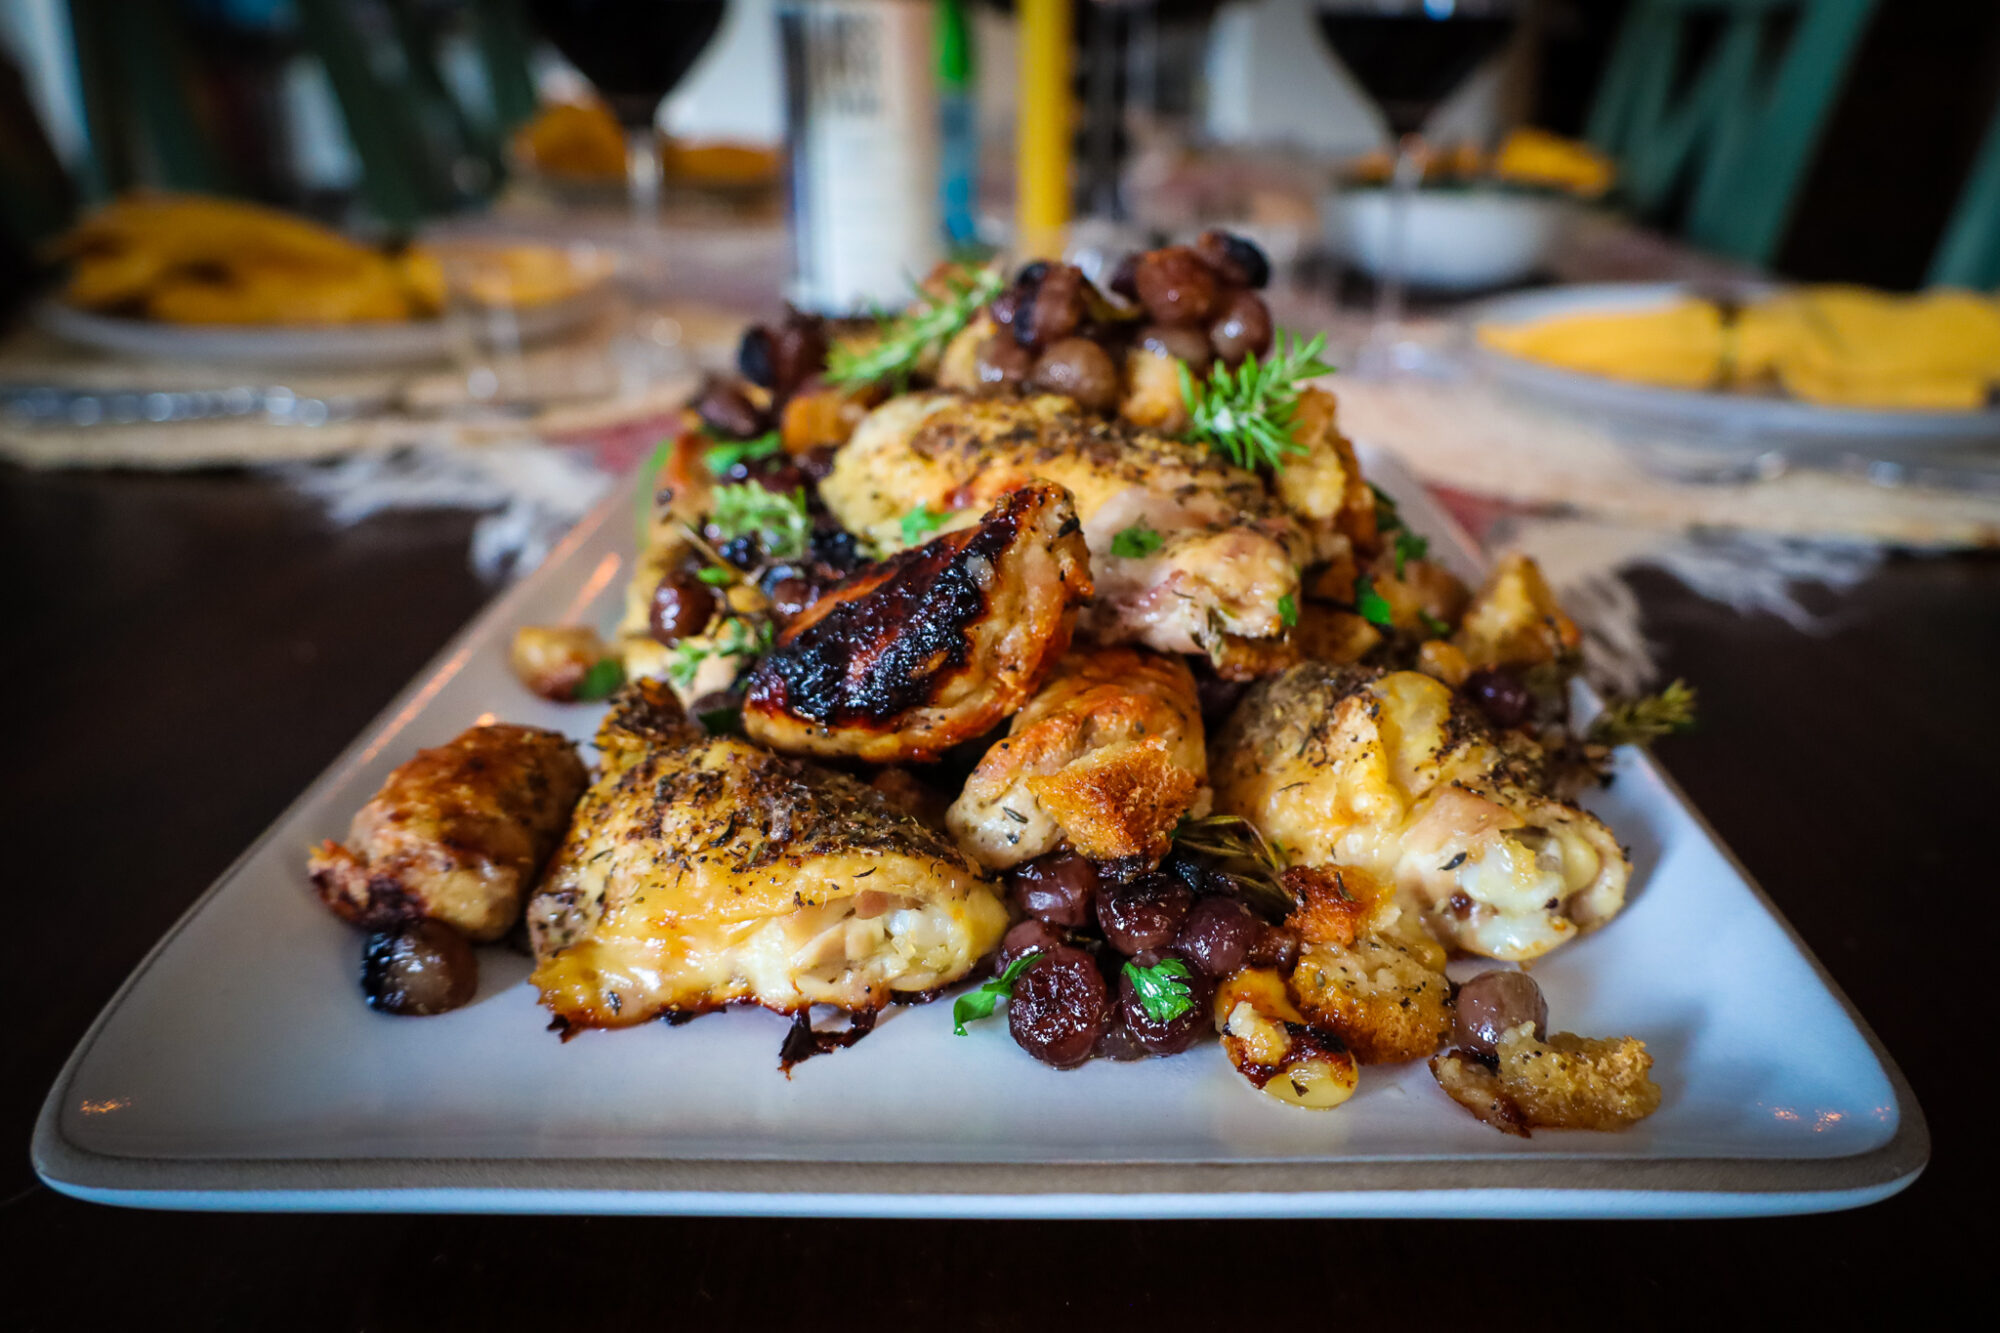 Oven Roasted Chicken Thighs with Sausages and Grapes horizontal image